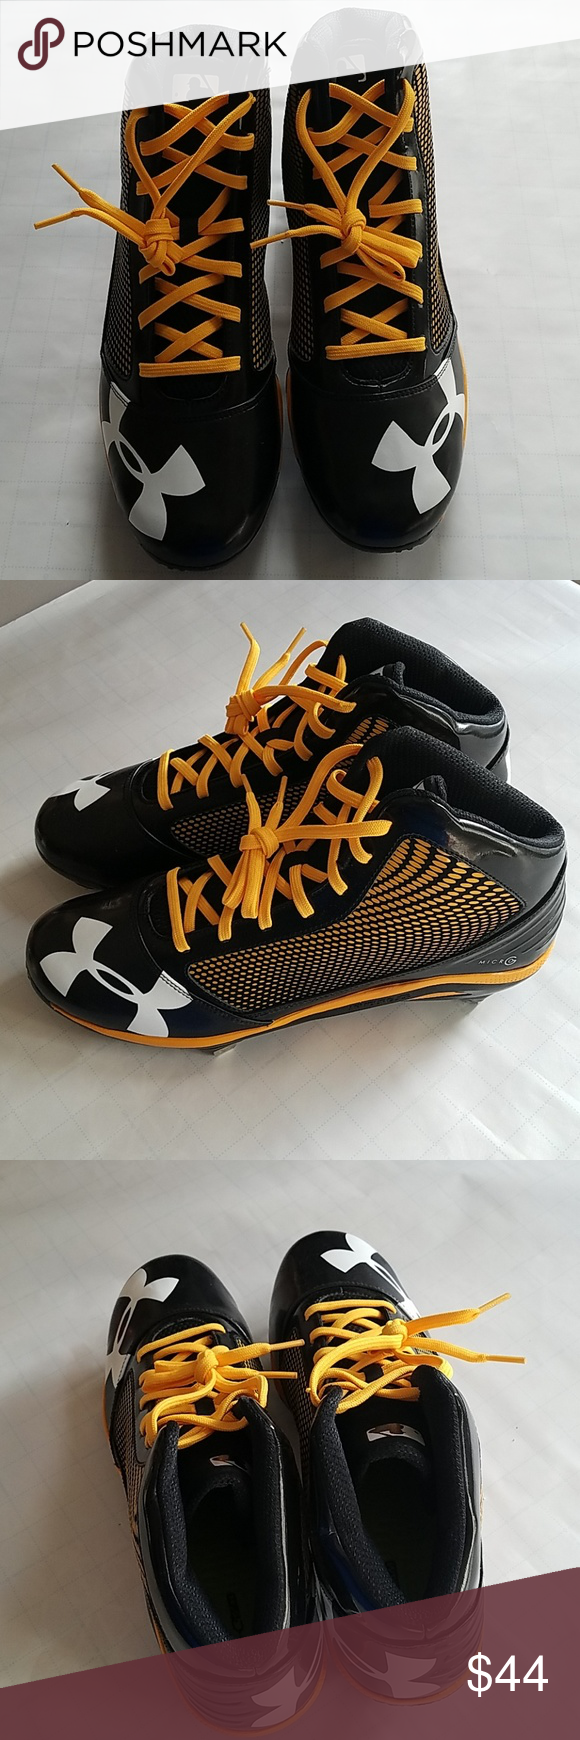 Under Armour Baseball Cleats New Under Armour Baseball Cleats Mens Size 14 4d Foam Insole For Comfort Under Armour Baseball Cleats Cleats Under Armour Shoes